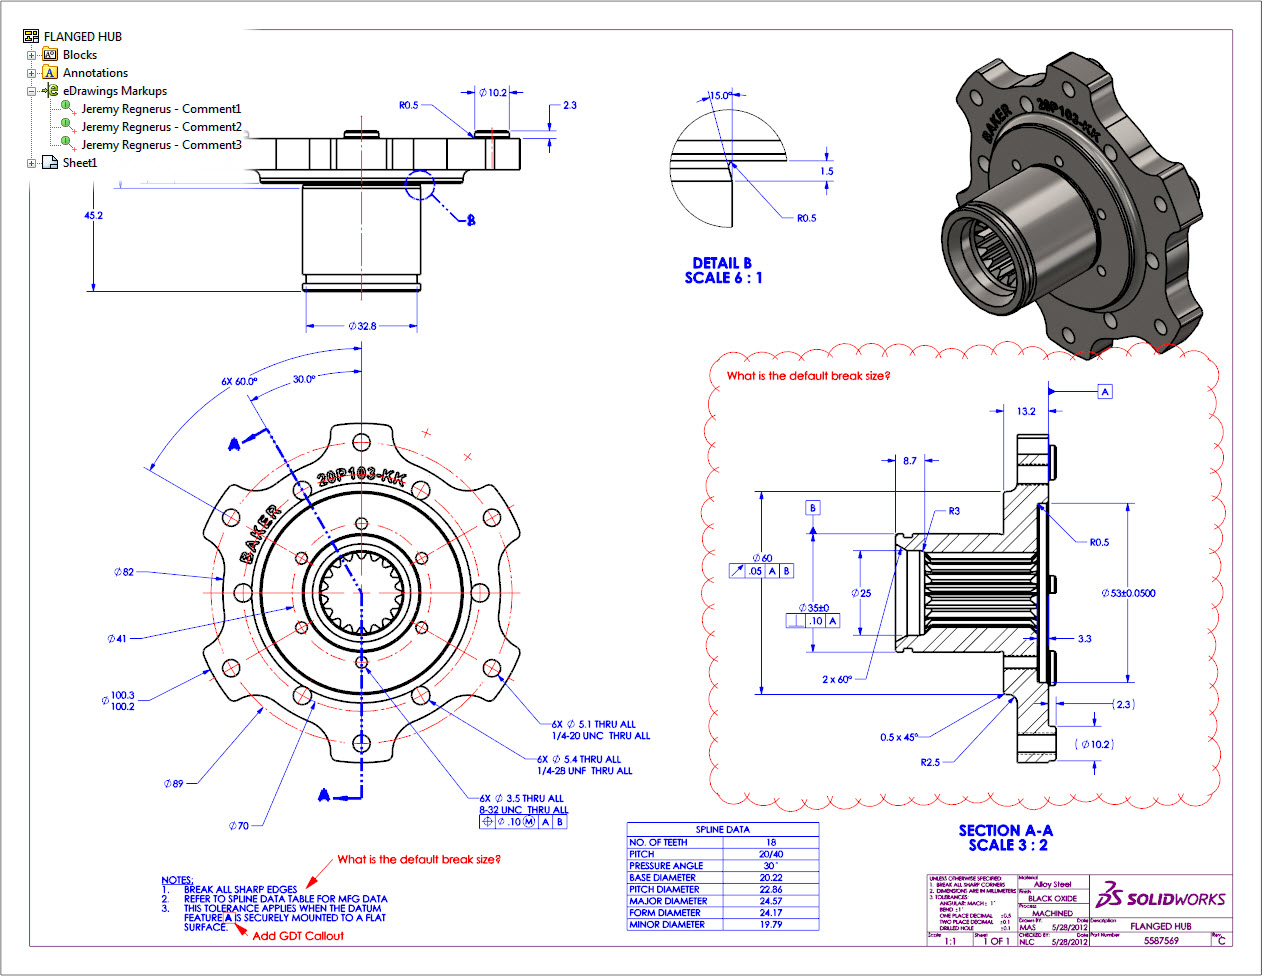 Tech Tip Tuesdays Edrawings Markups In Solidworks Drawings